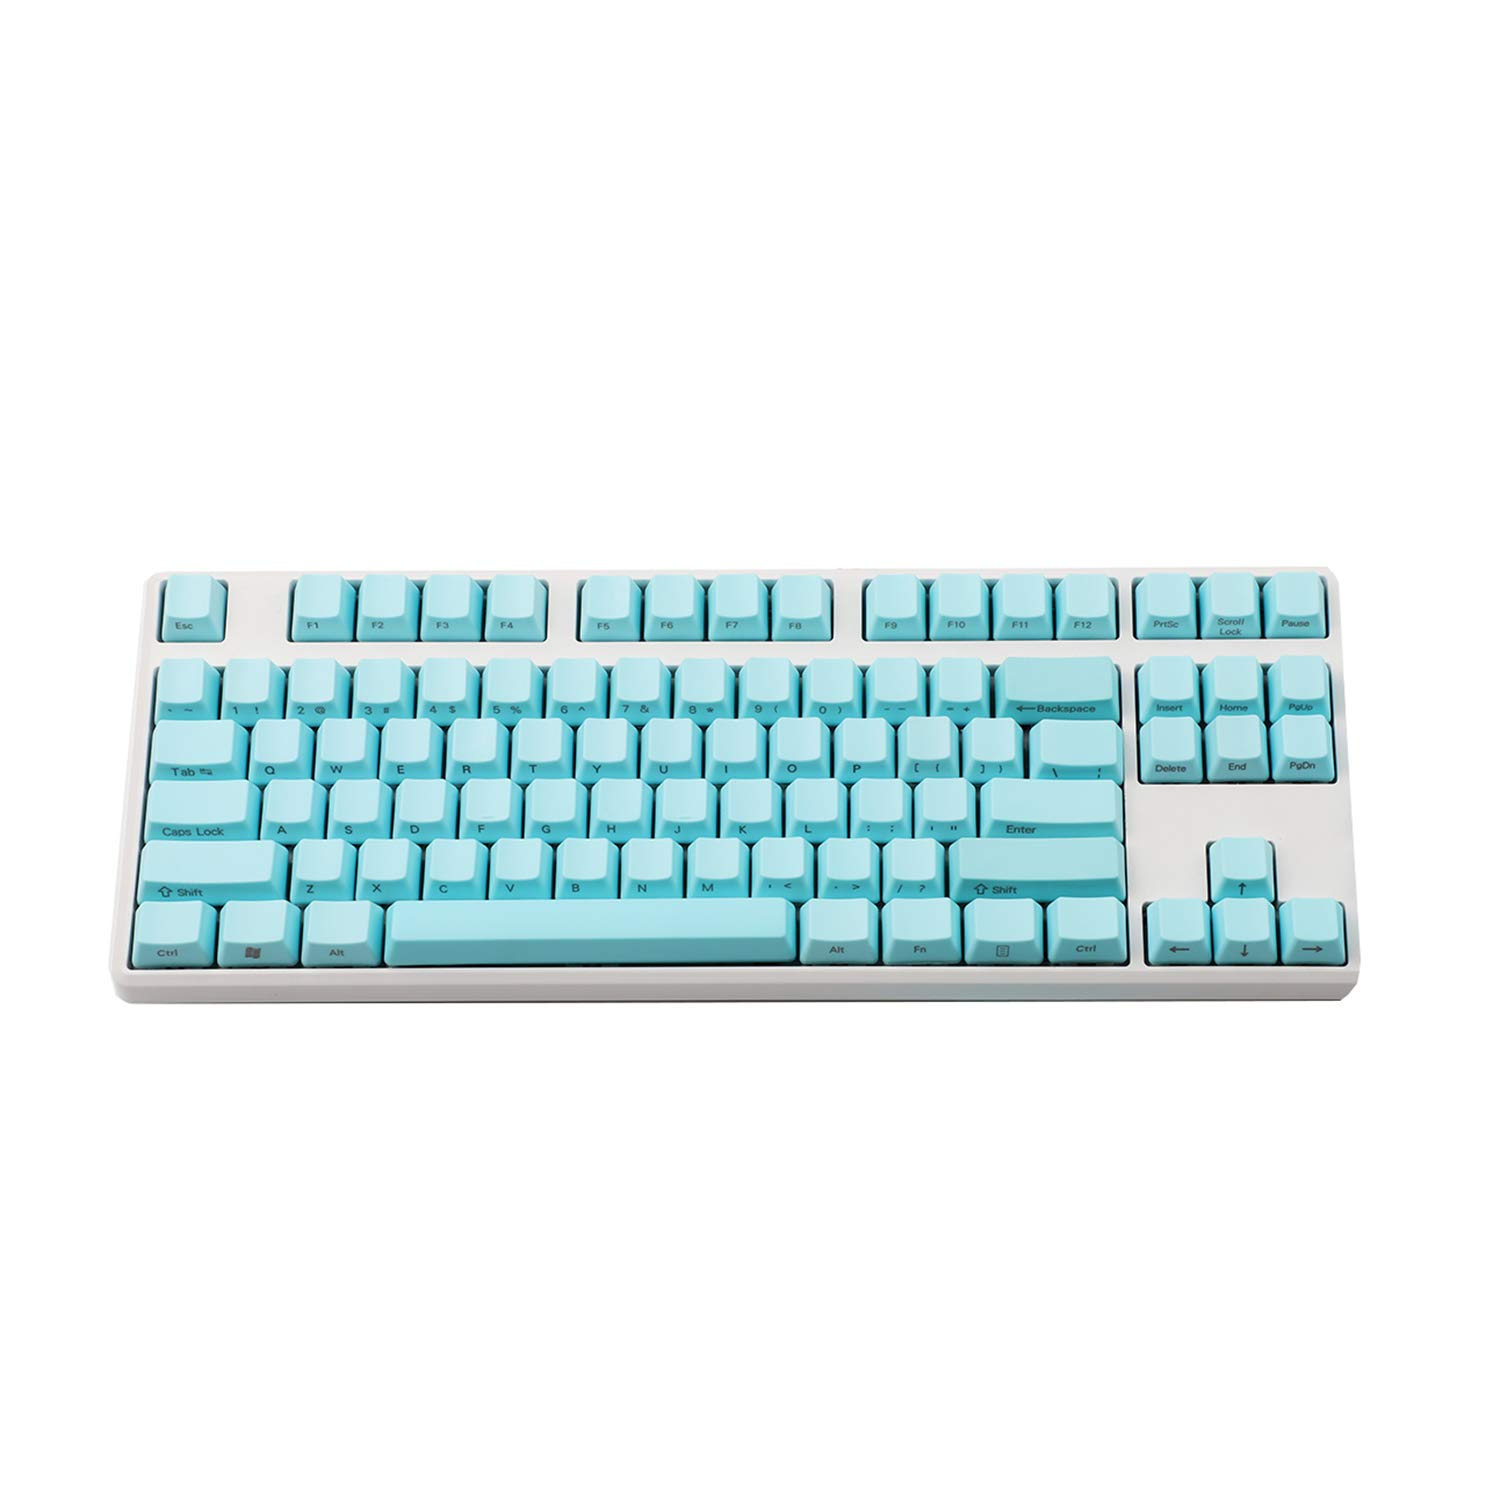 Side-Printed Thick PBT OEM Profile 87 ANSI Keycaps for MX Switches Mechanical Keyboard (Pink) WPL ymd-key-s87